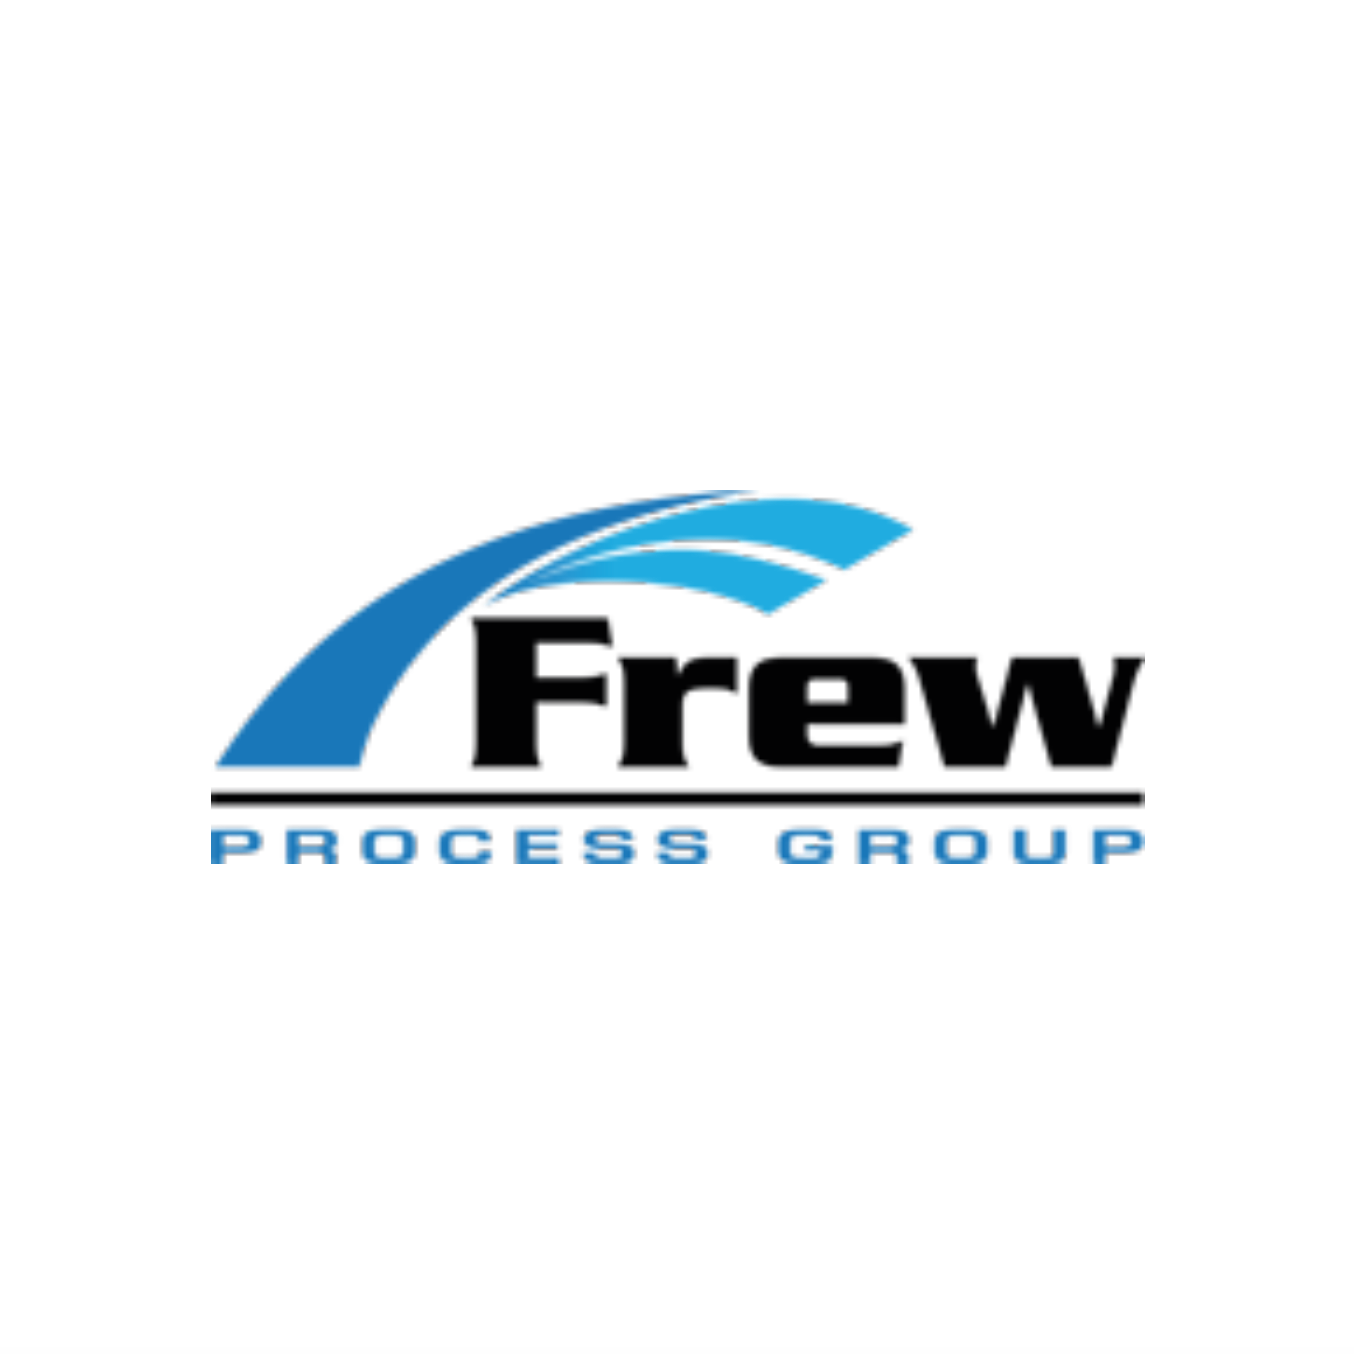 Frew Process Group